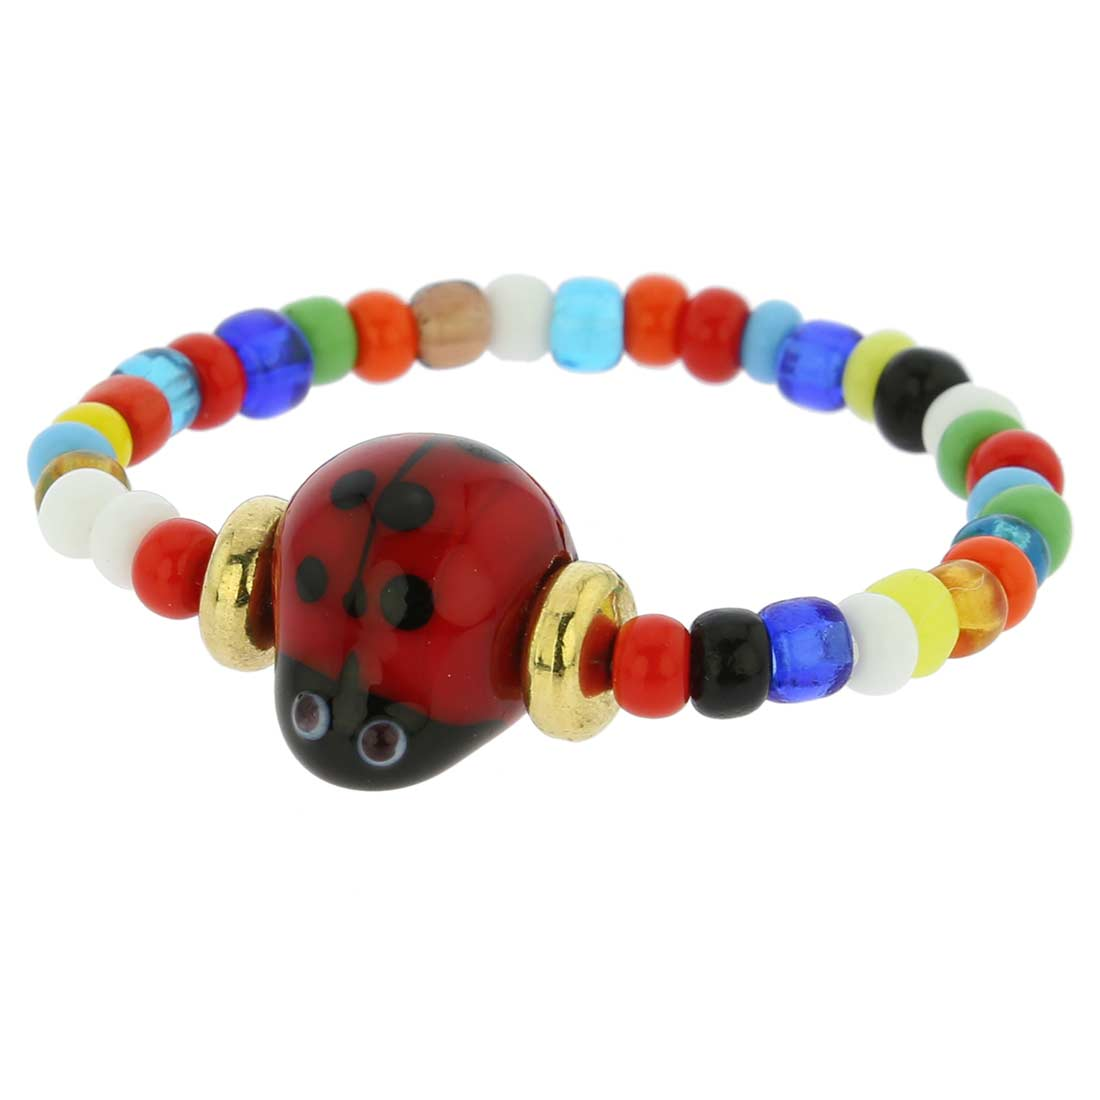 Murano Glass Cute Ladybug Children's Bracelet